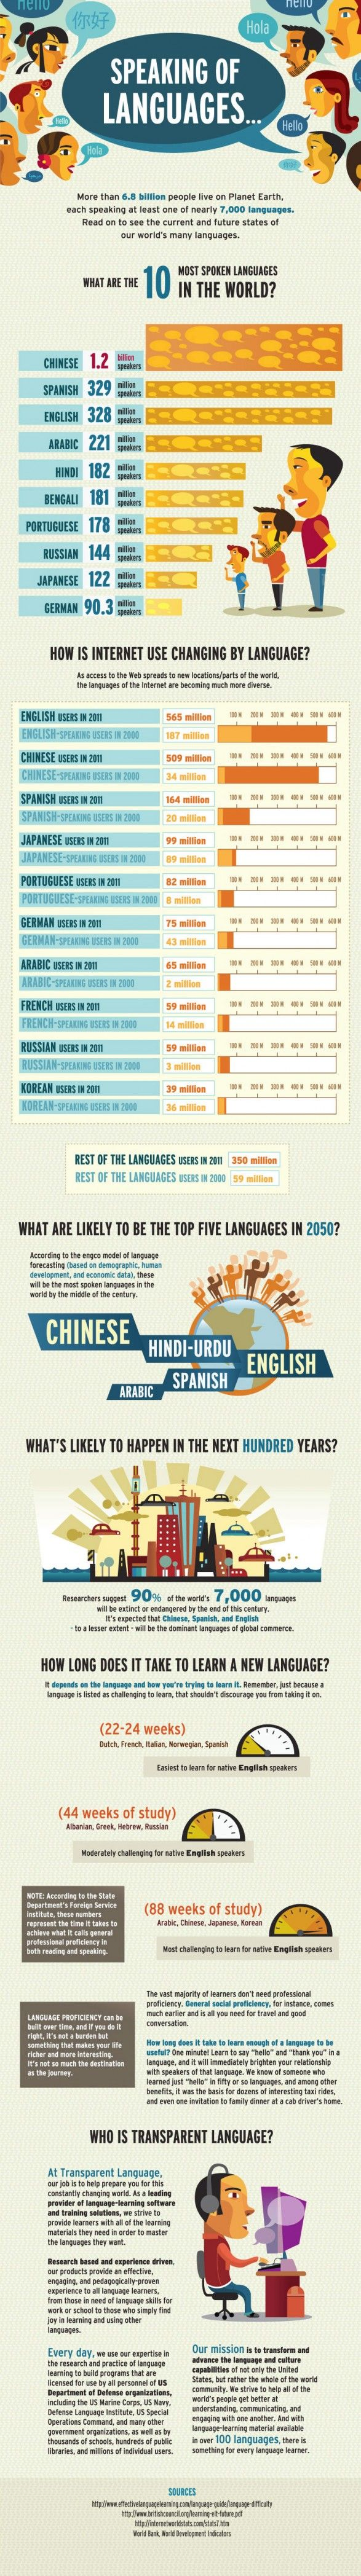 Which language would be better to learn Arabic or Chinese